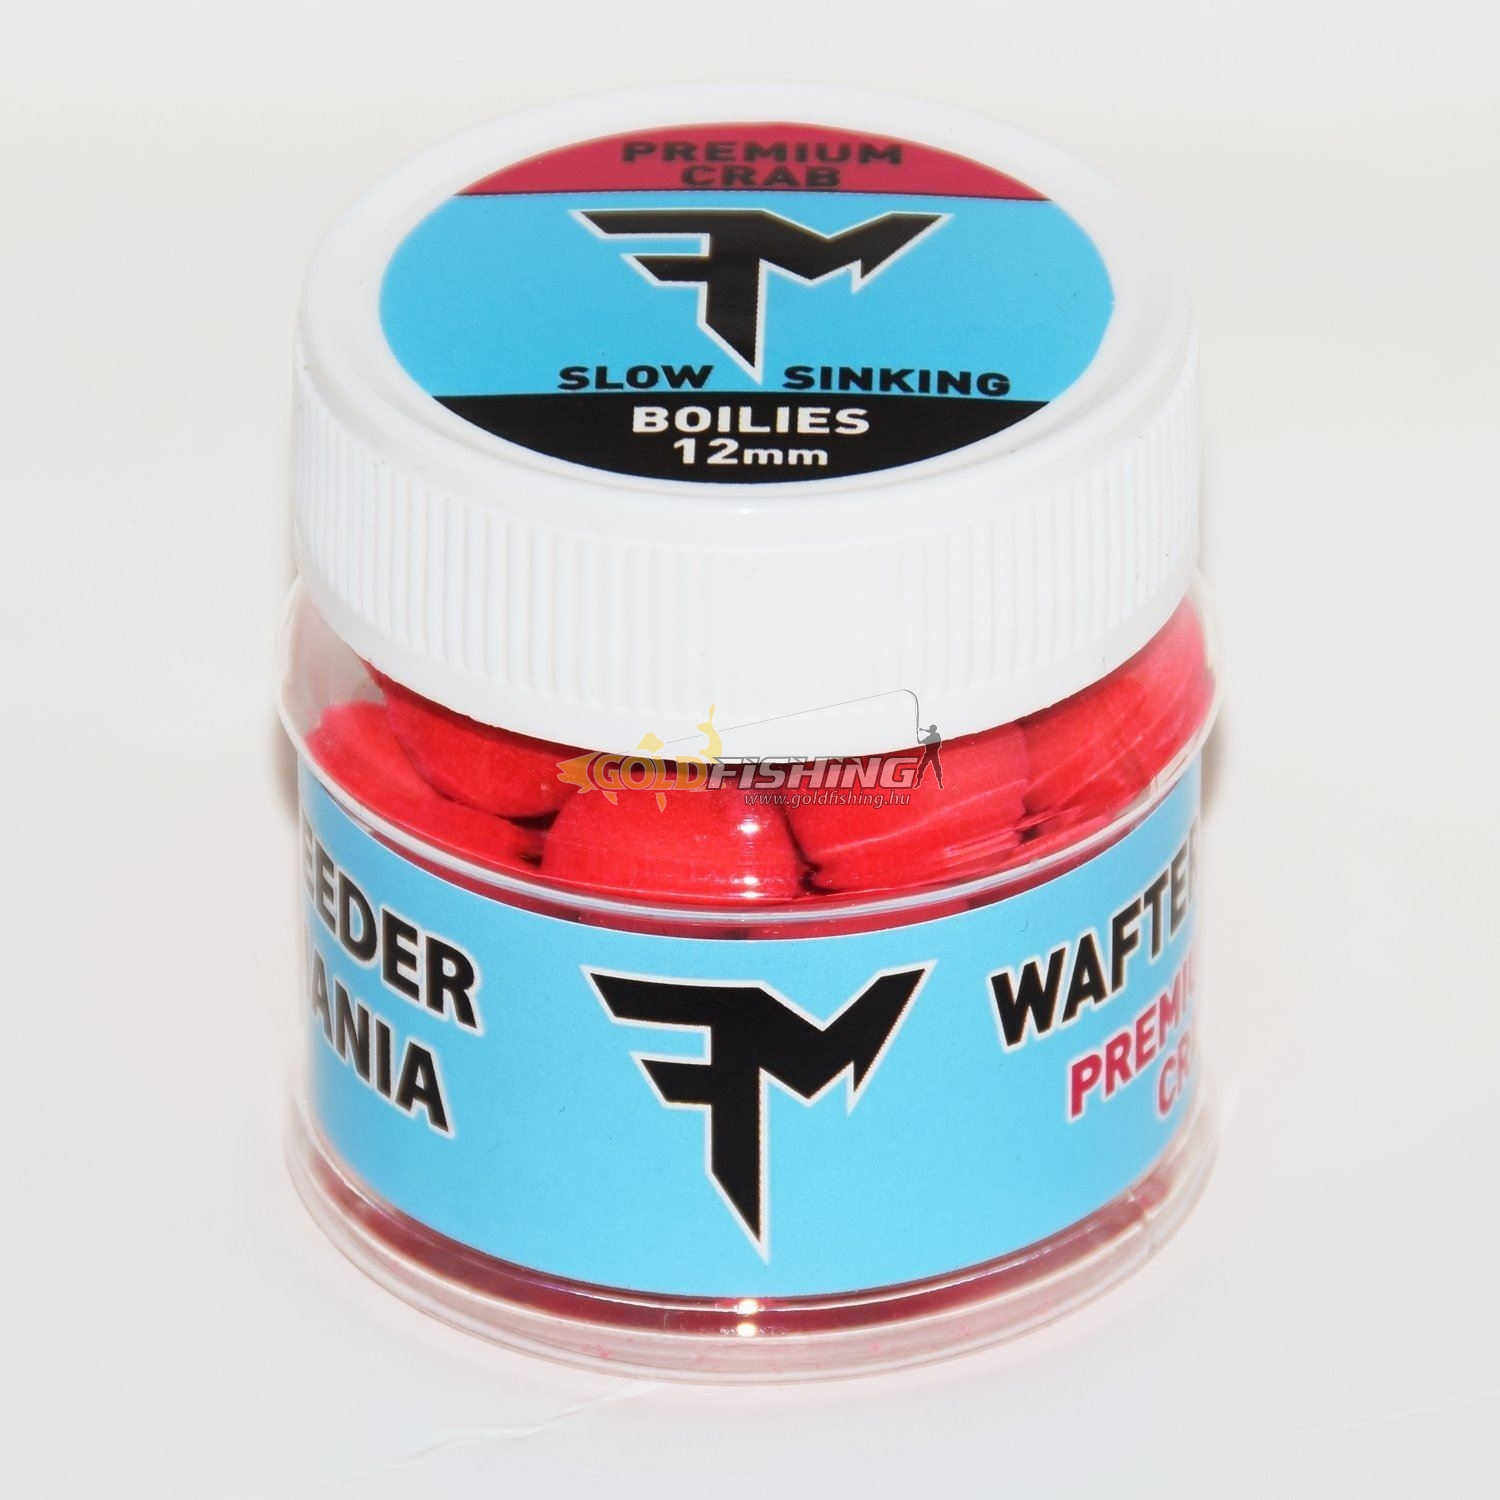 WAFTERS - Premium Crab